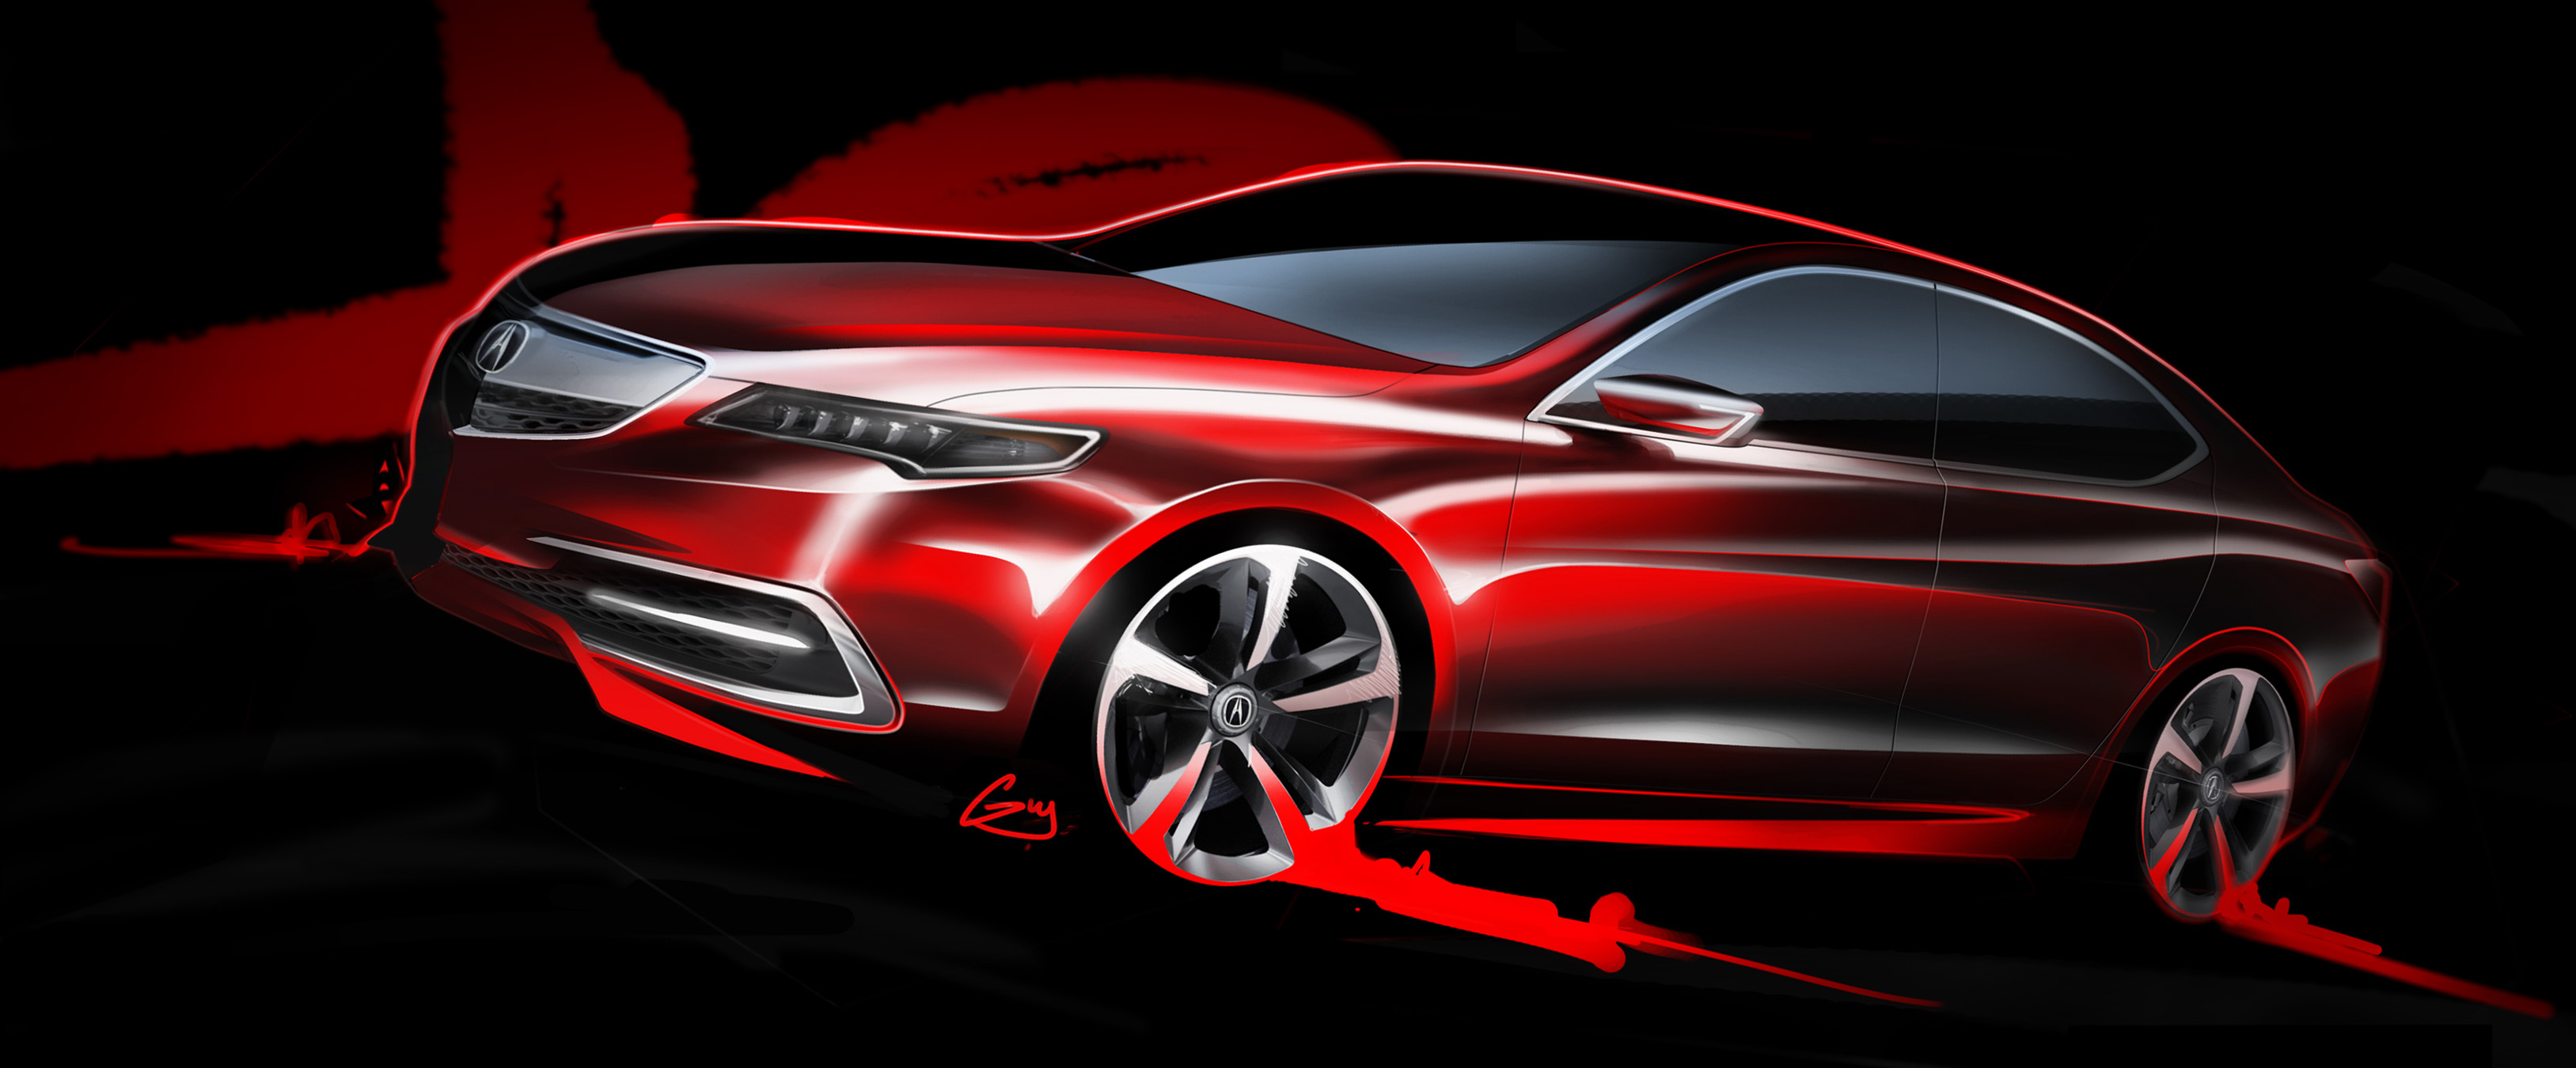 Acura Tlx Prototype Previews All New 2015 Model Paul Tan